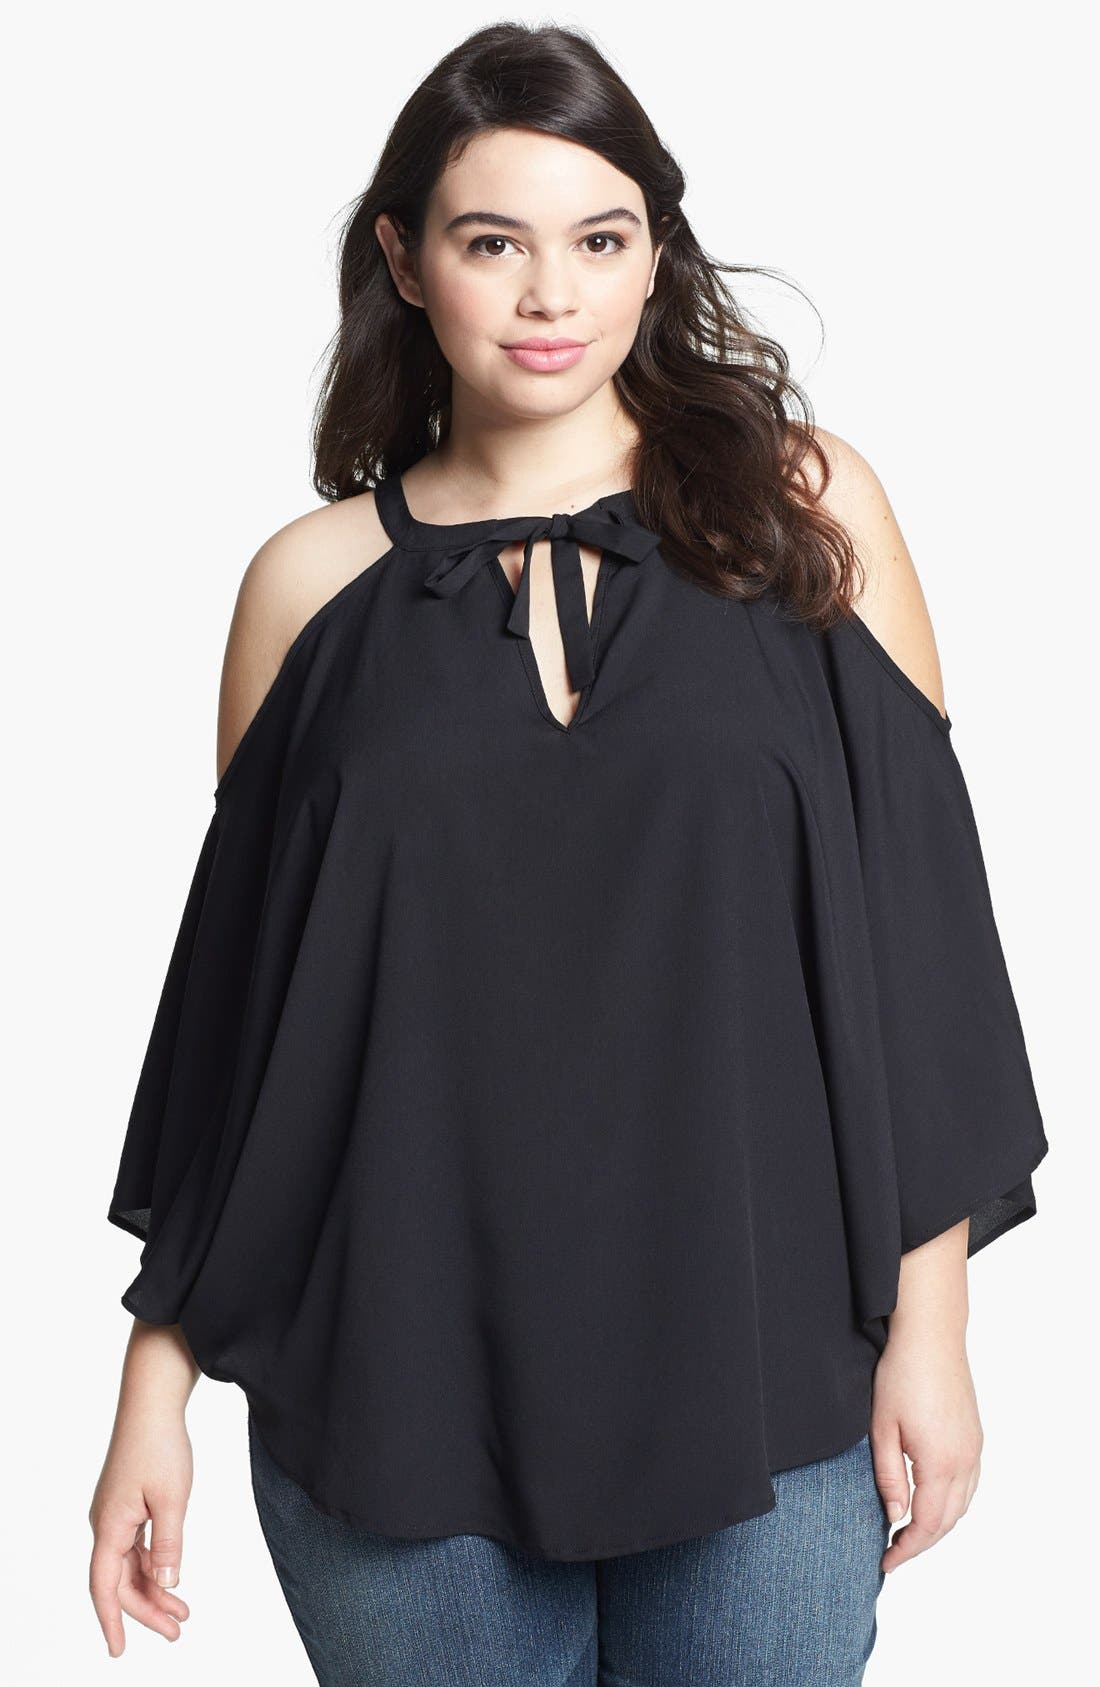 Alternate Image 1 Selected - BB Dakota Cold Shoulder Top (Plus Size)